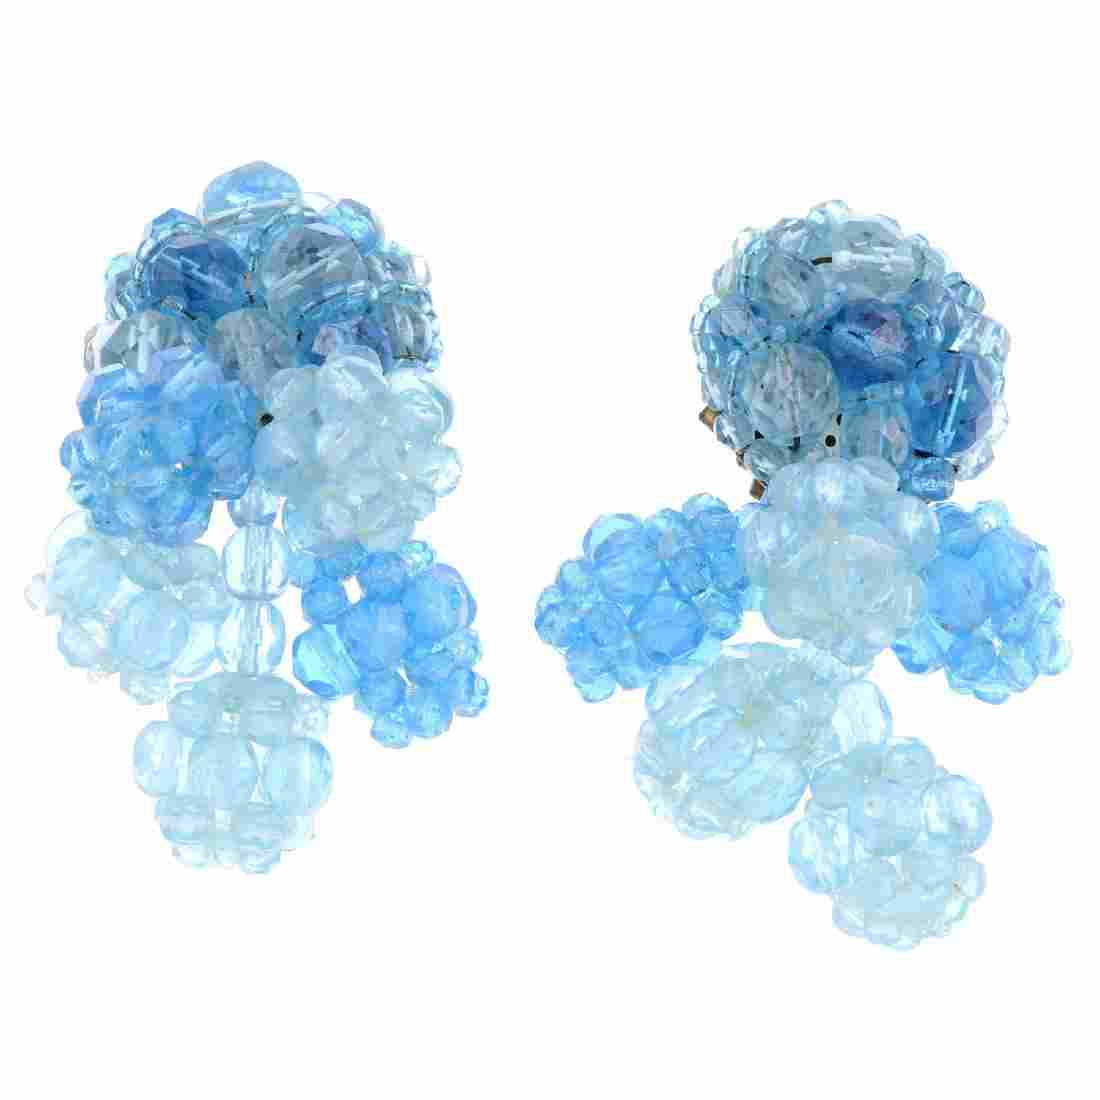 COPPOLA E TOPPO - a pair of earrings. Designed as two